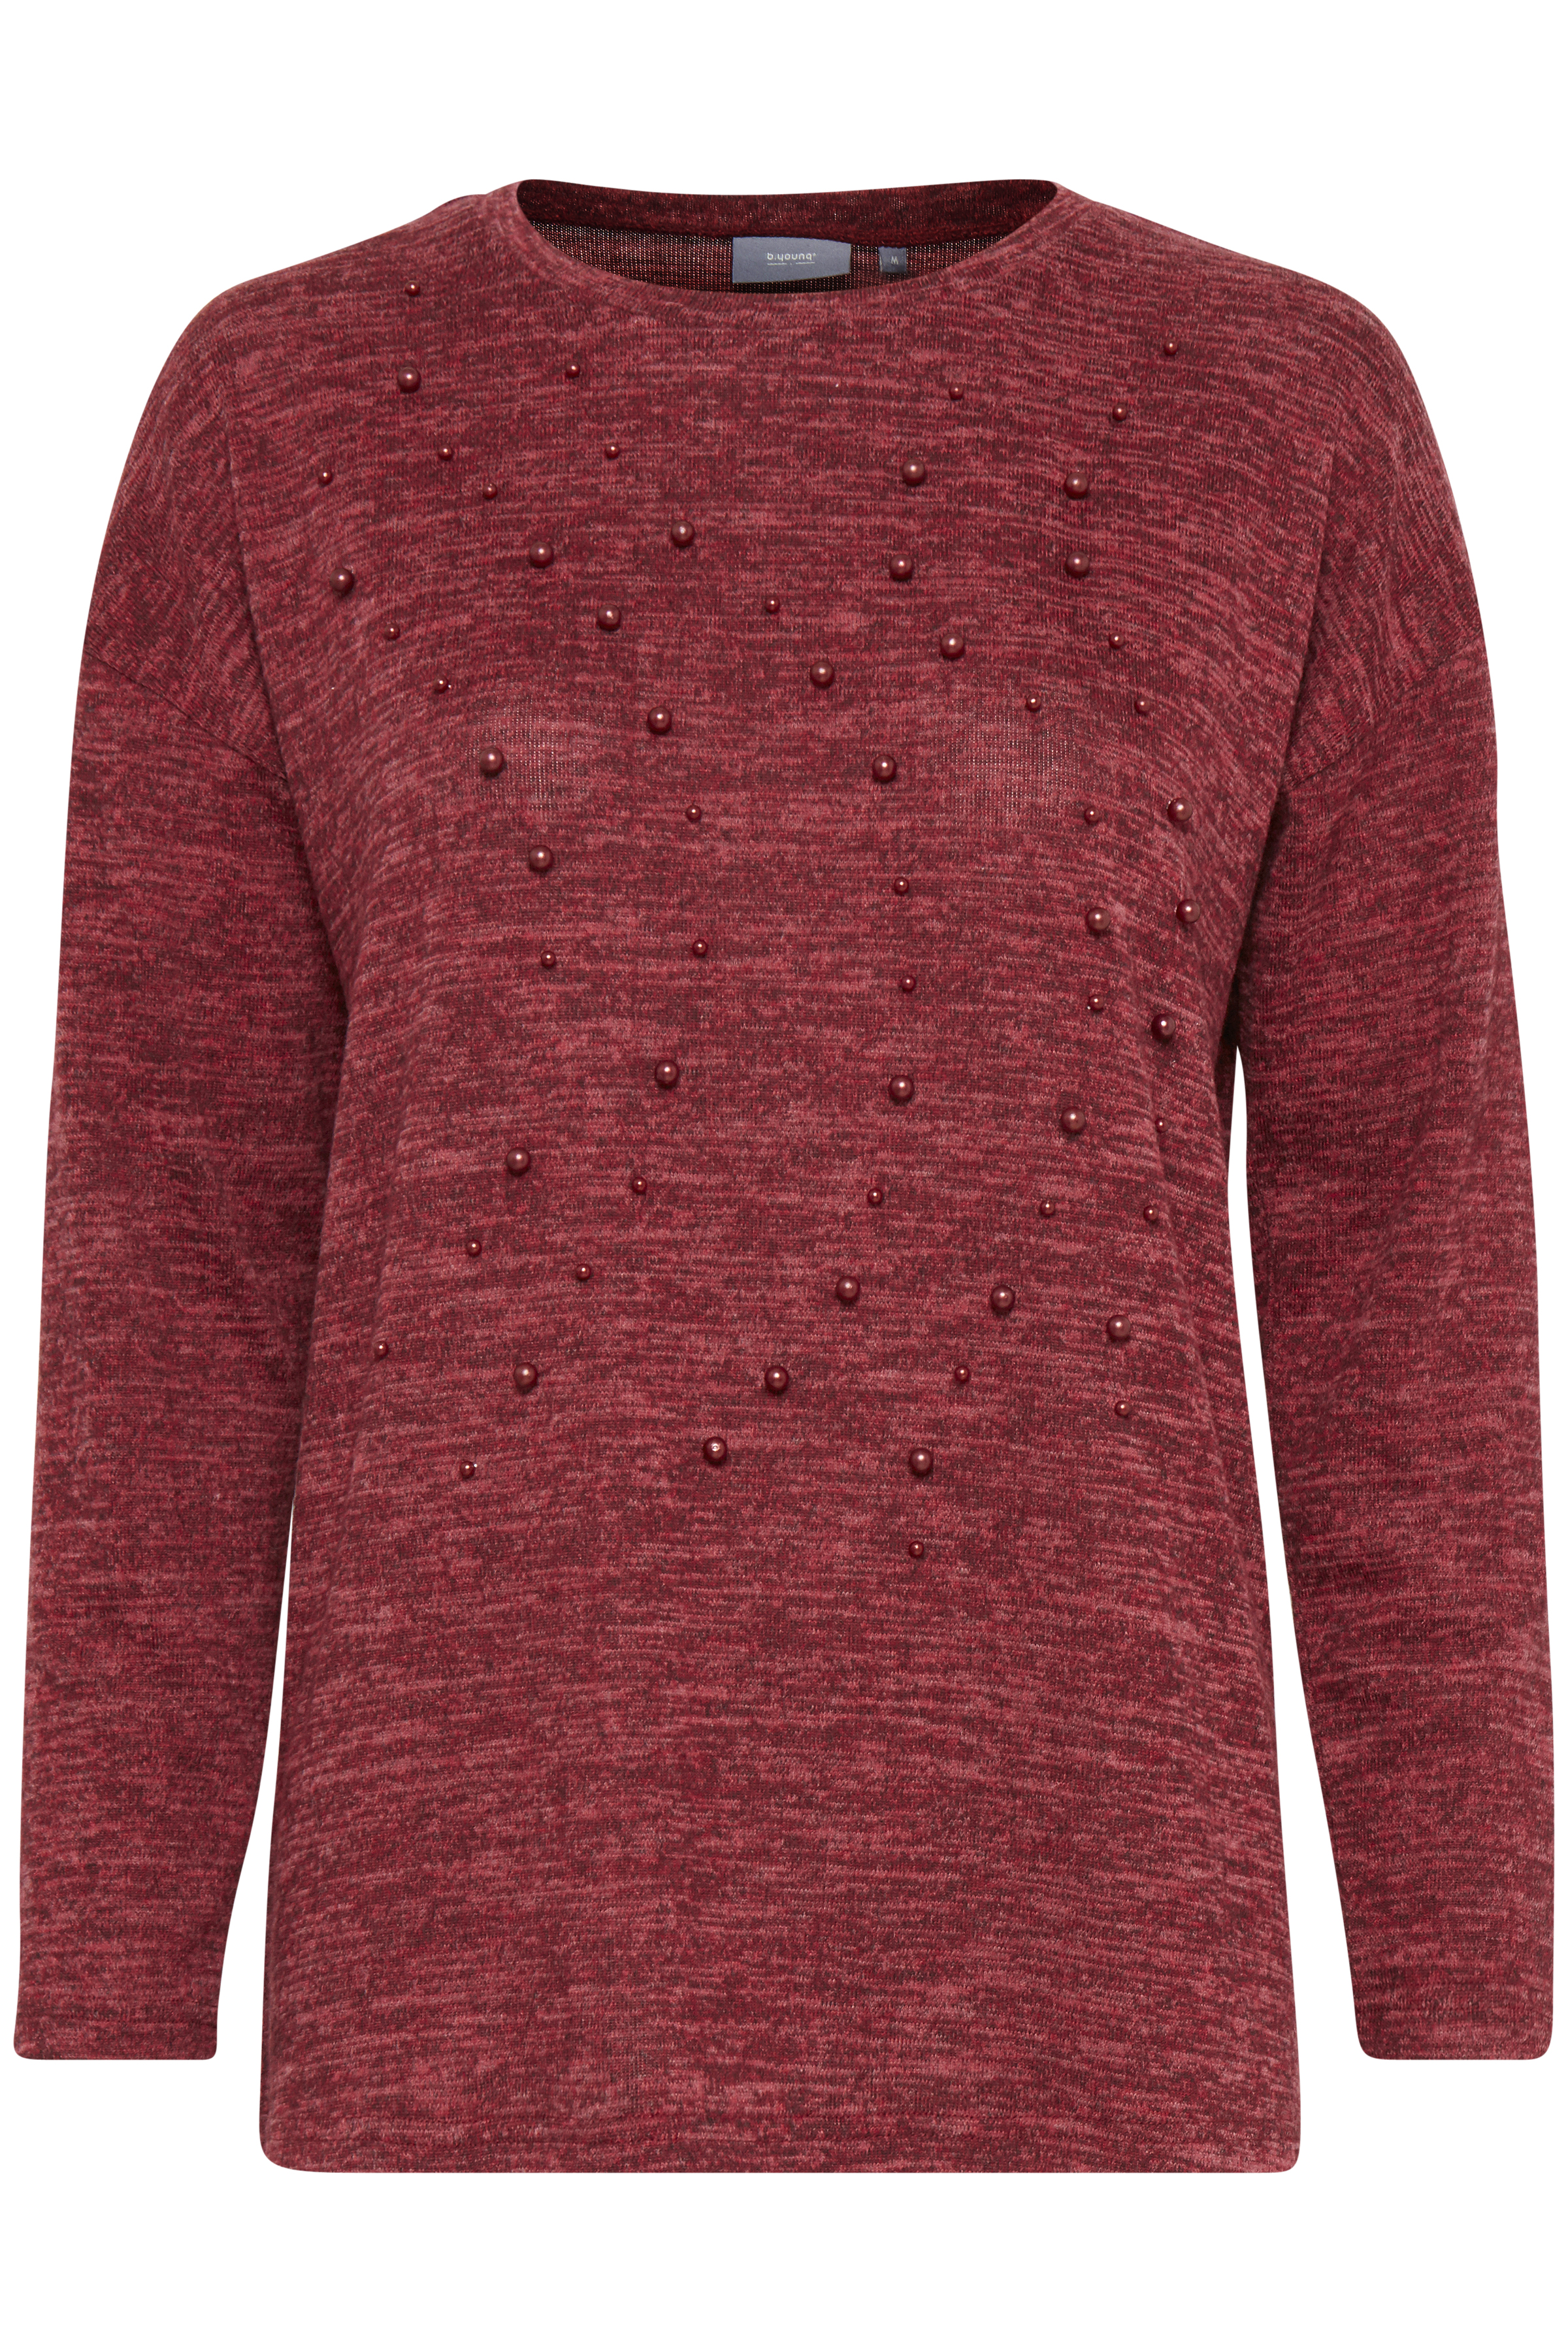 Blood Red melange  from b.young – Buy Blood Red melange  from size XS-XXL here